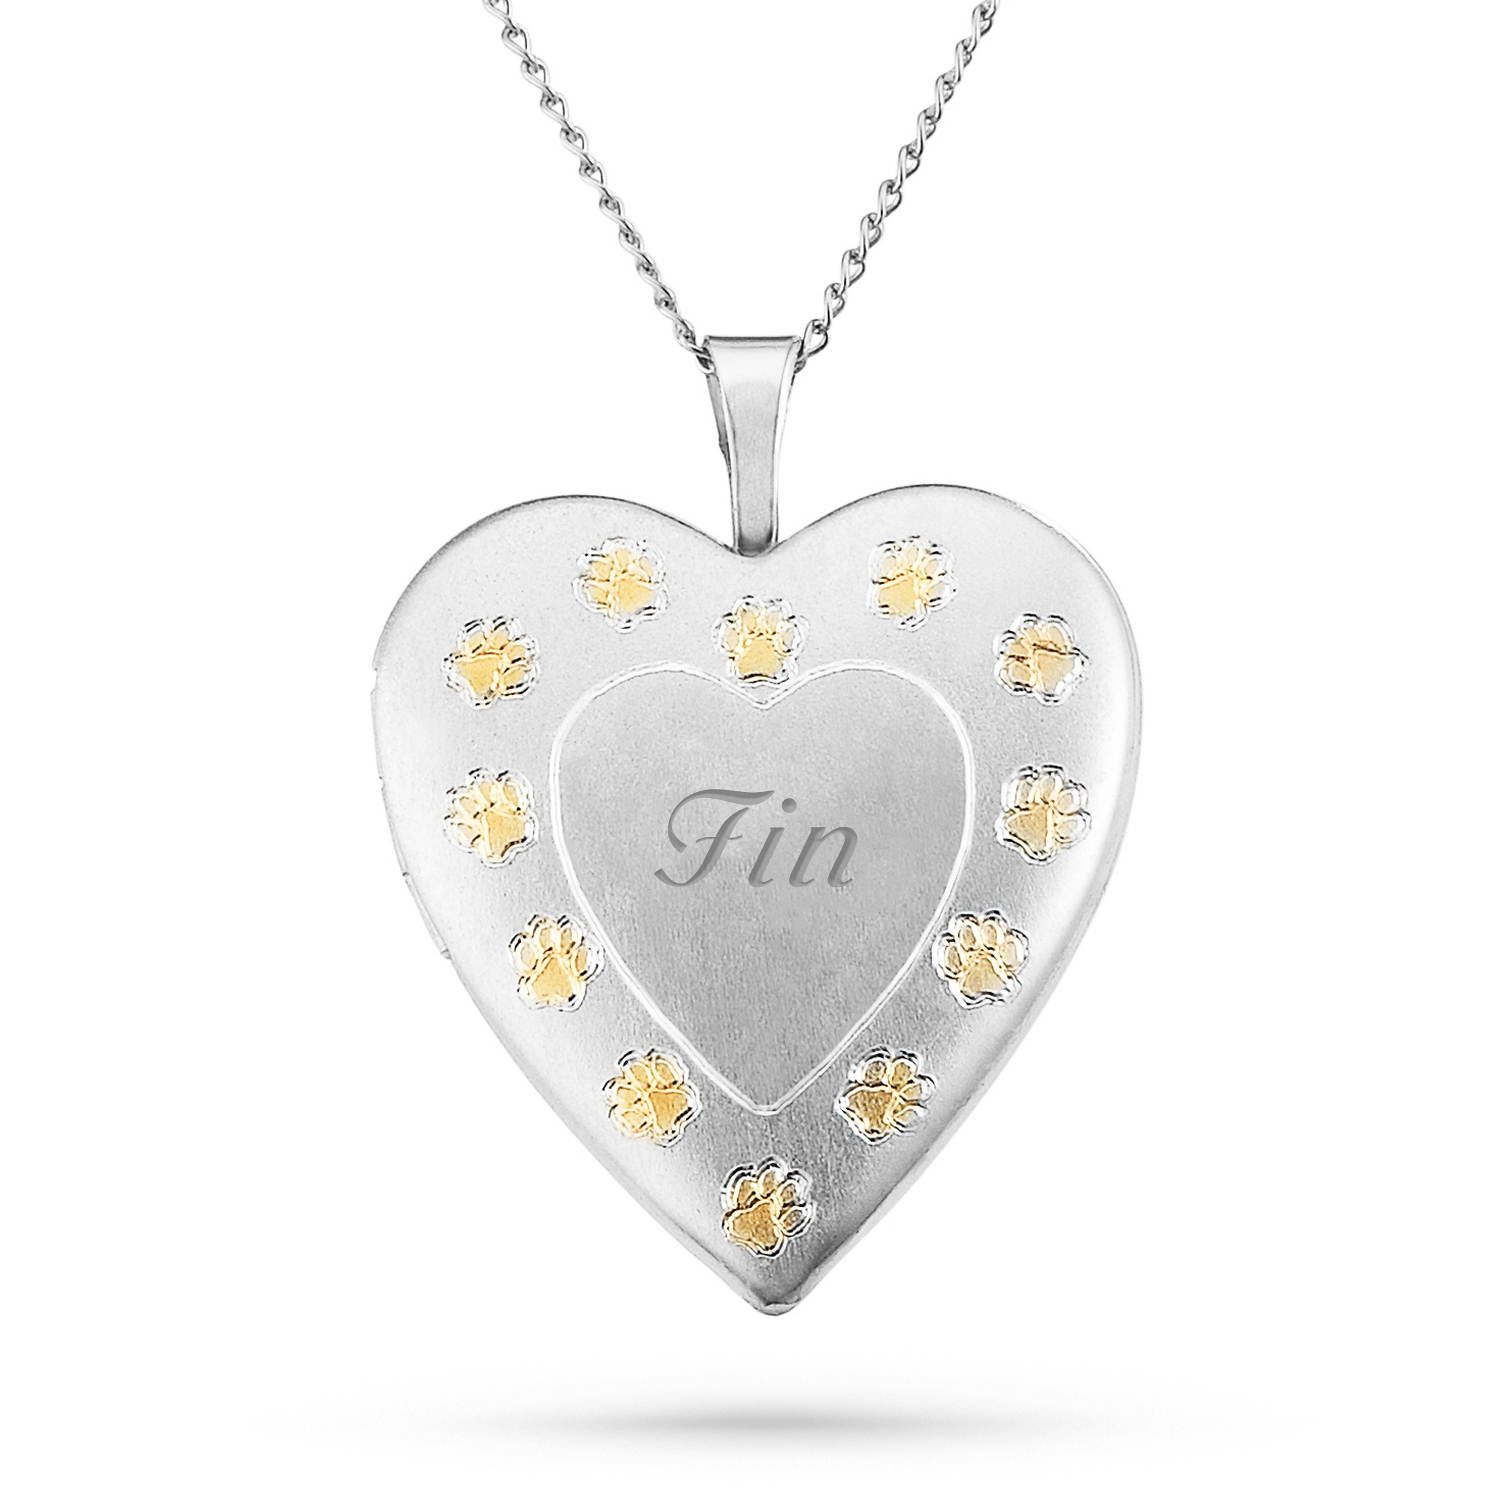 quotations brass locket memorial urns paw filigree heart tiny at necklaces get alibaba cheap with com set line lockets on print find guides shopping deals